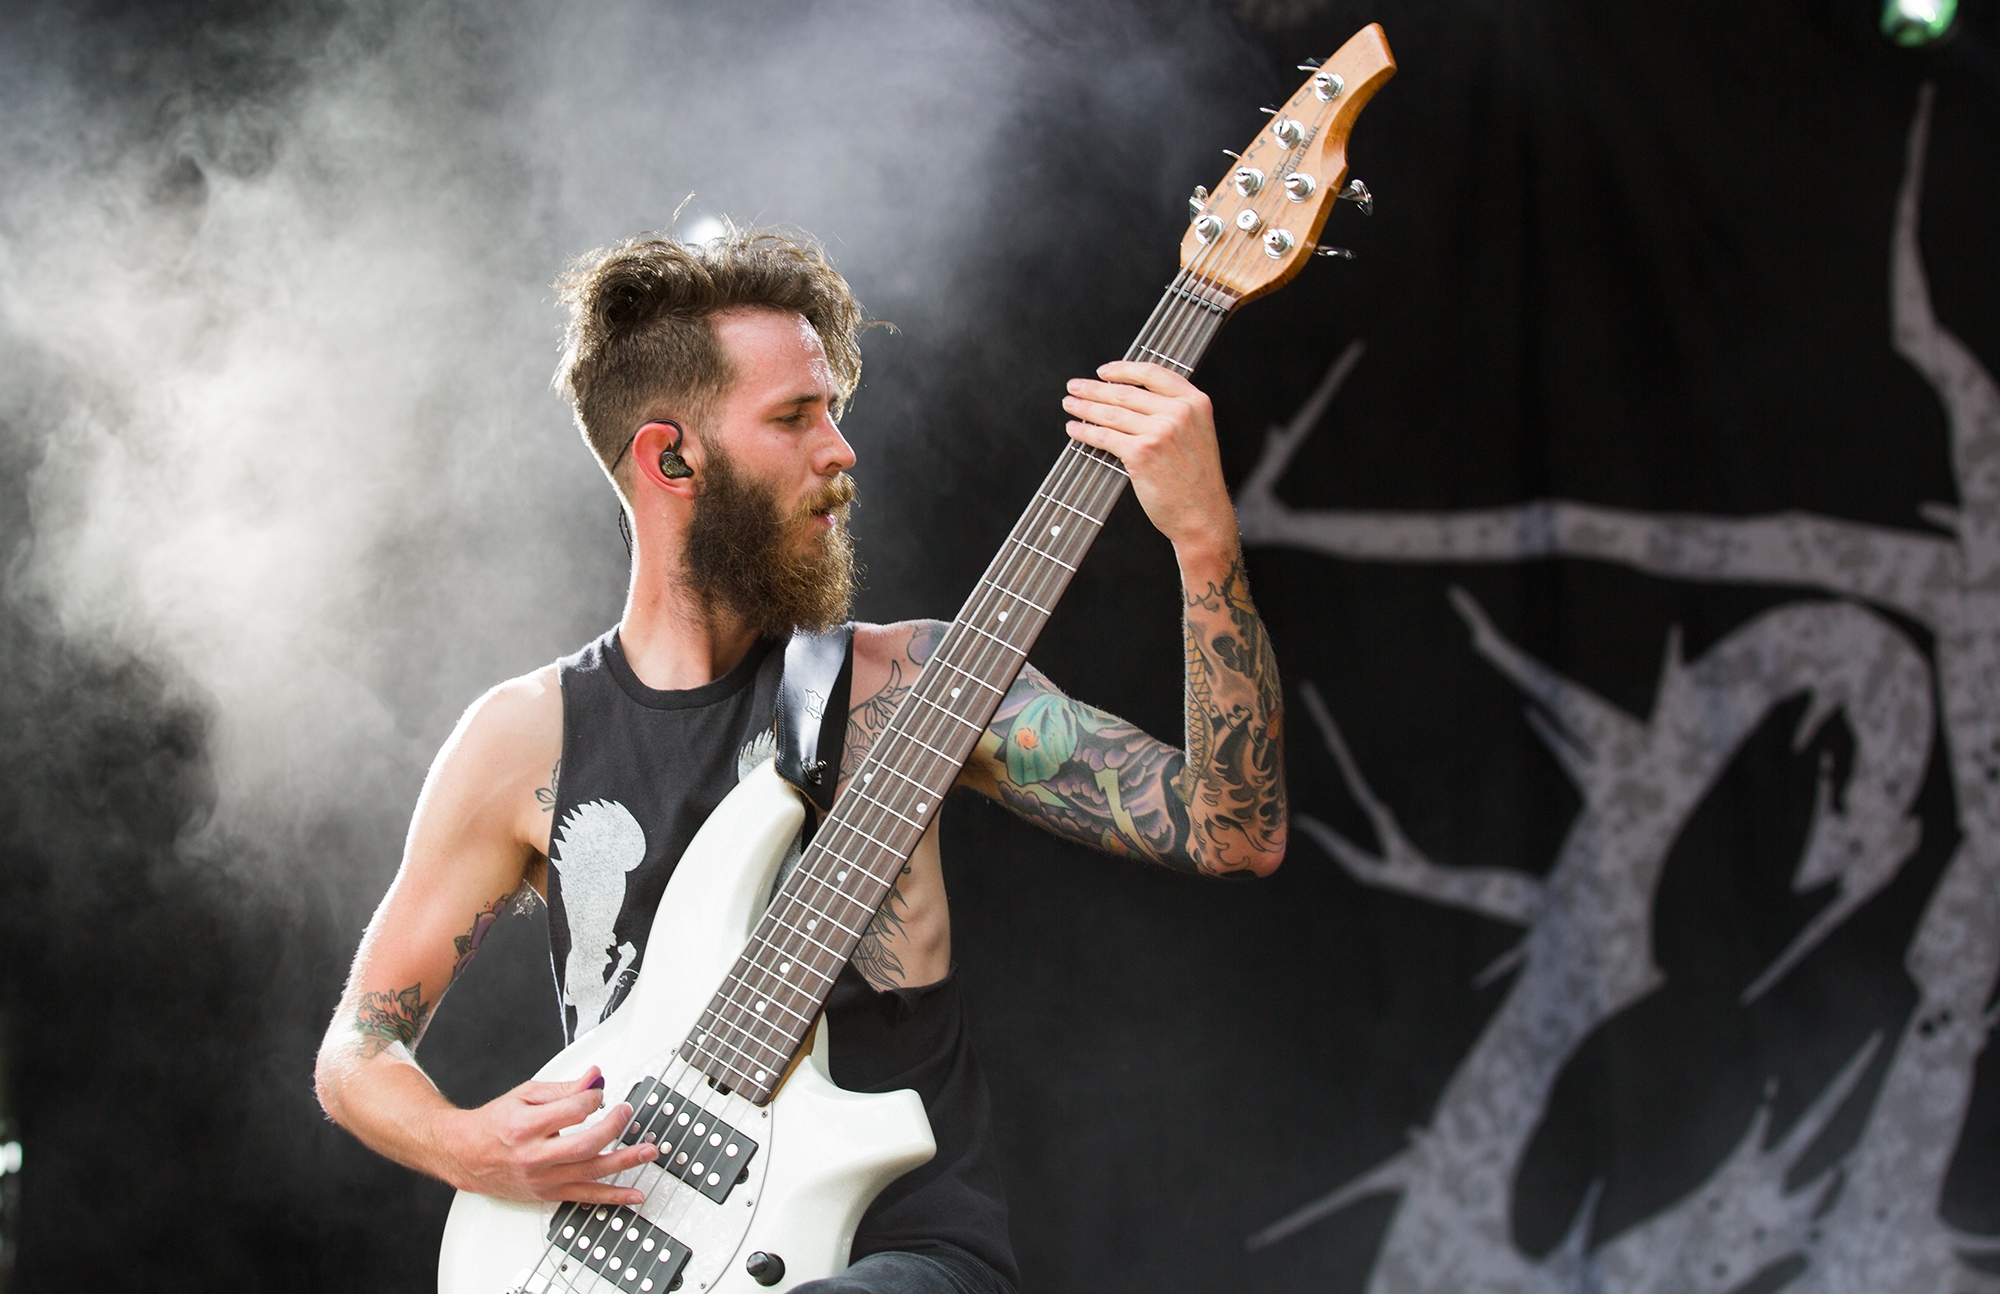 13-06-2015_Chelsea_Grin-AM_08